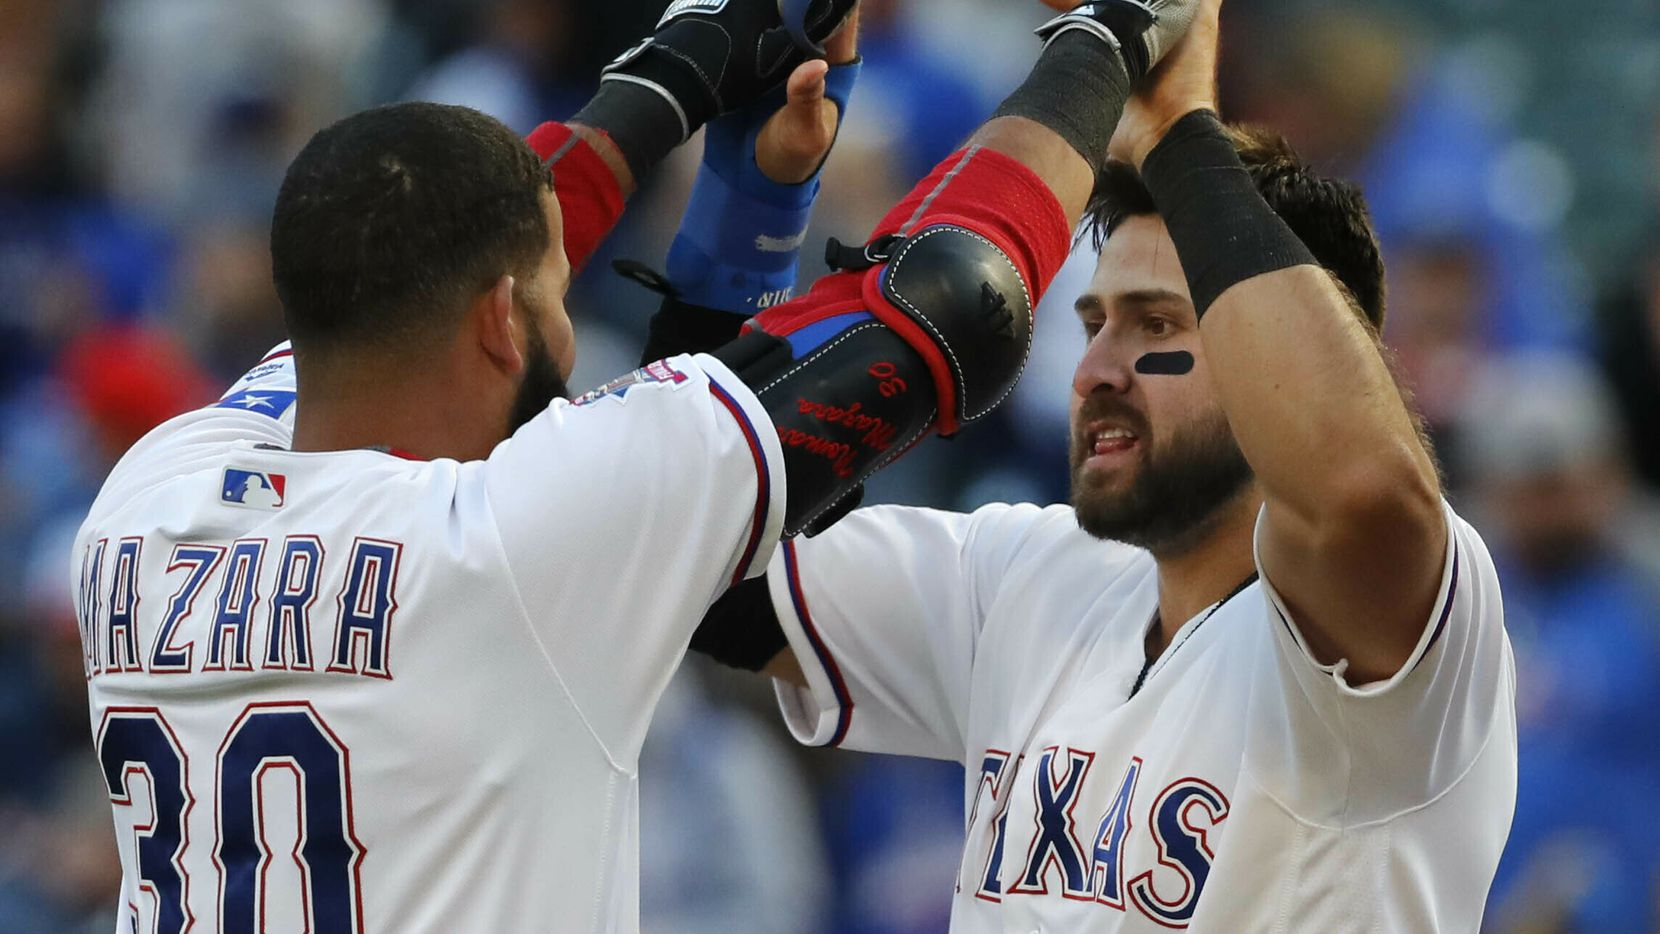 Texas Rangers Joey Gallo, right, is congratulated by teammate Nomar Mazara (30) after scoring the game winning run during the ninth inning of a baseball game against the Chicago Cubs in Arlington,Texas, Sunday, March 31, 2019. (AP Photo/LM Otero)